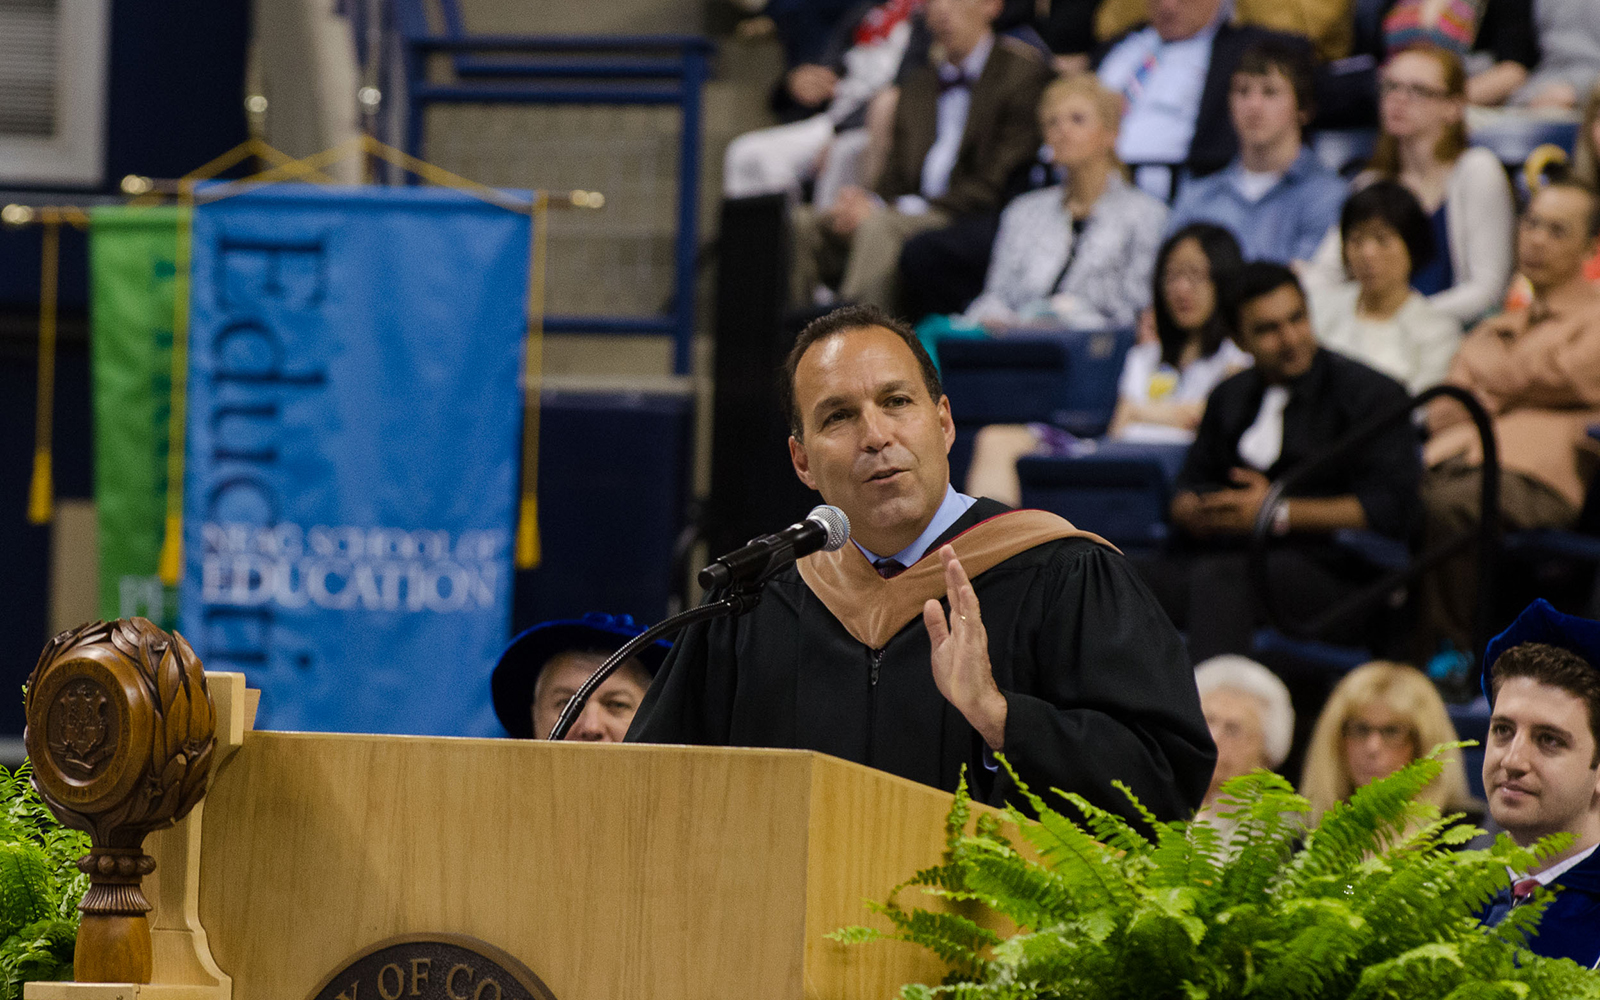 Daniel Toscano '87 (BUS) gives the keynote address at the School of Business Commencement ceremony held at Gampel Pavilion on May 12, 2013. (Ariel Dowski/UConn Photo)